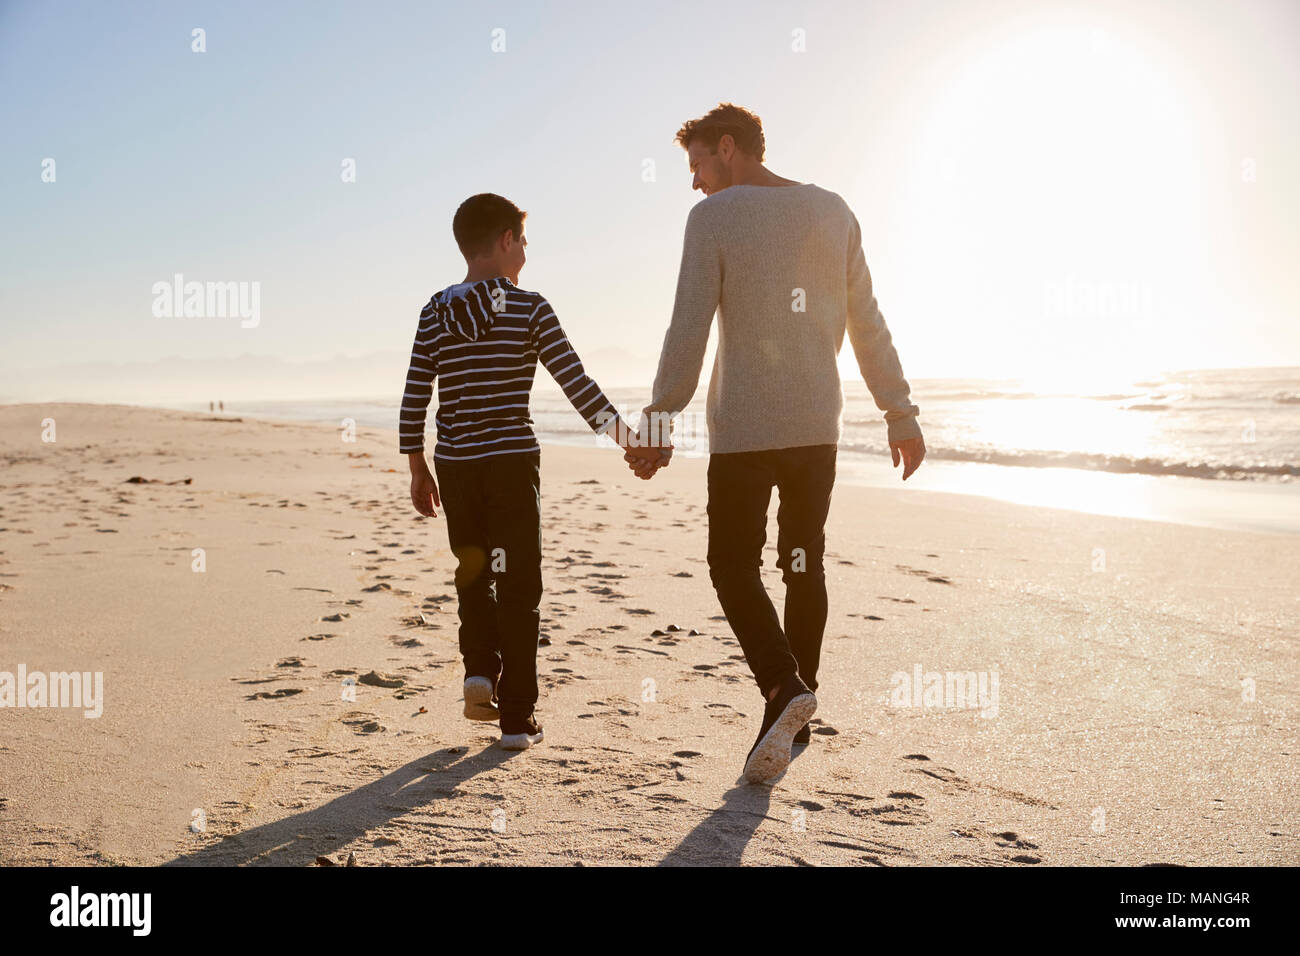 Rear View Of Father And Son Walking On Winter Beach Hand In Hand - Stock Image